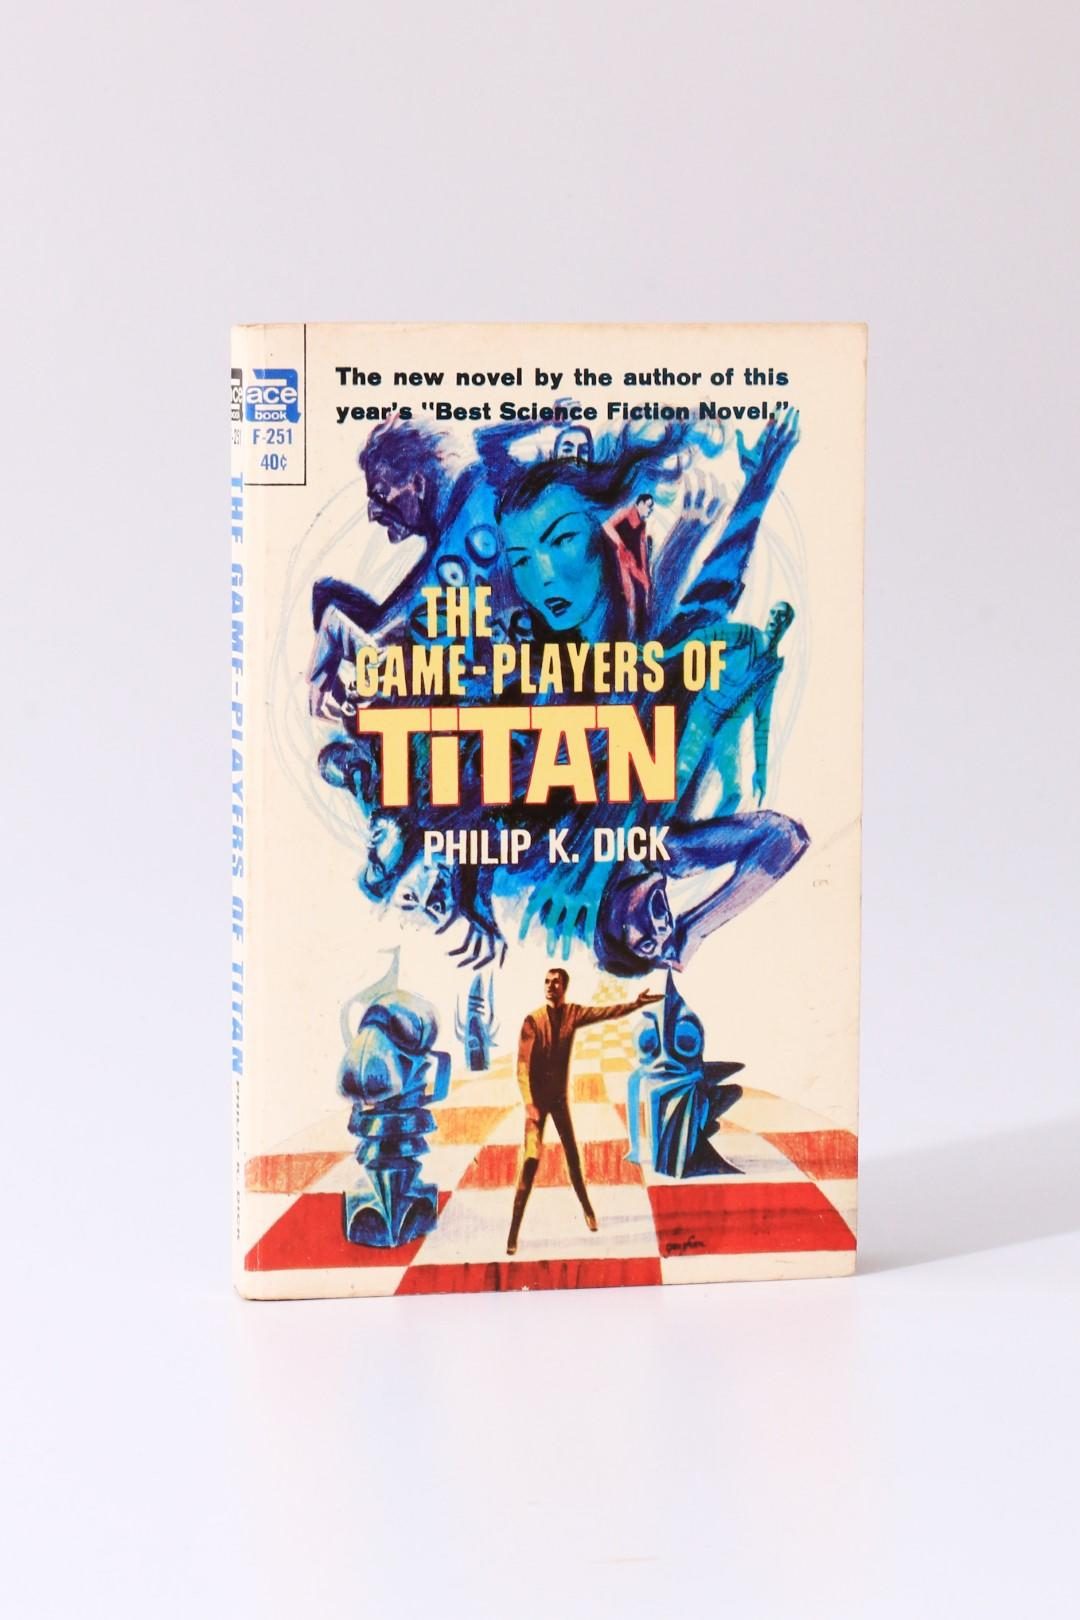 Philip K. Dick - The Game-Players of Titan - Ace Books, 1963, Signed First Edition.